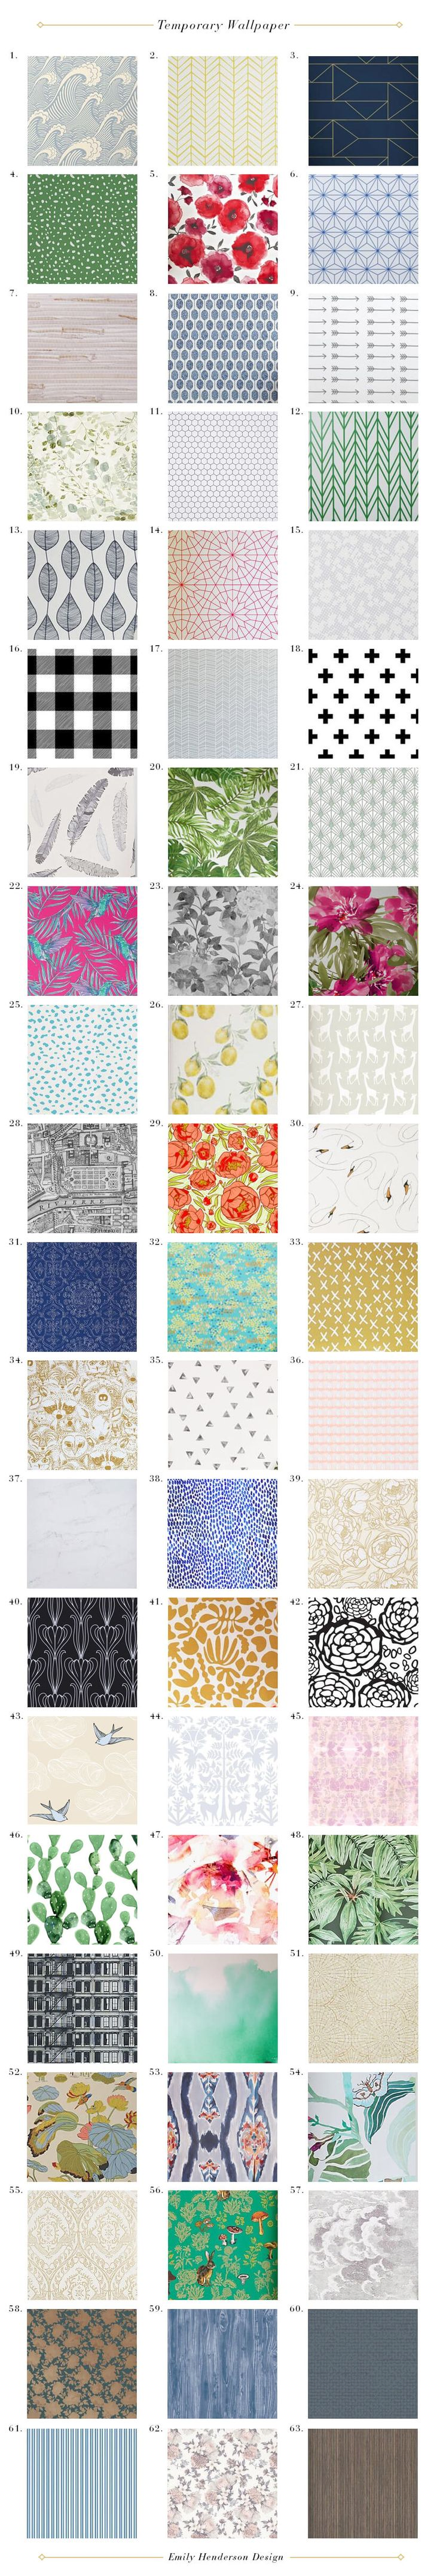 Page not found screenflex portable room iders - My 63 Favorite Temporary Wallpaper Patterns Emily Henderson